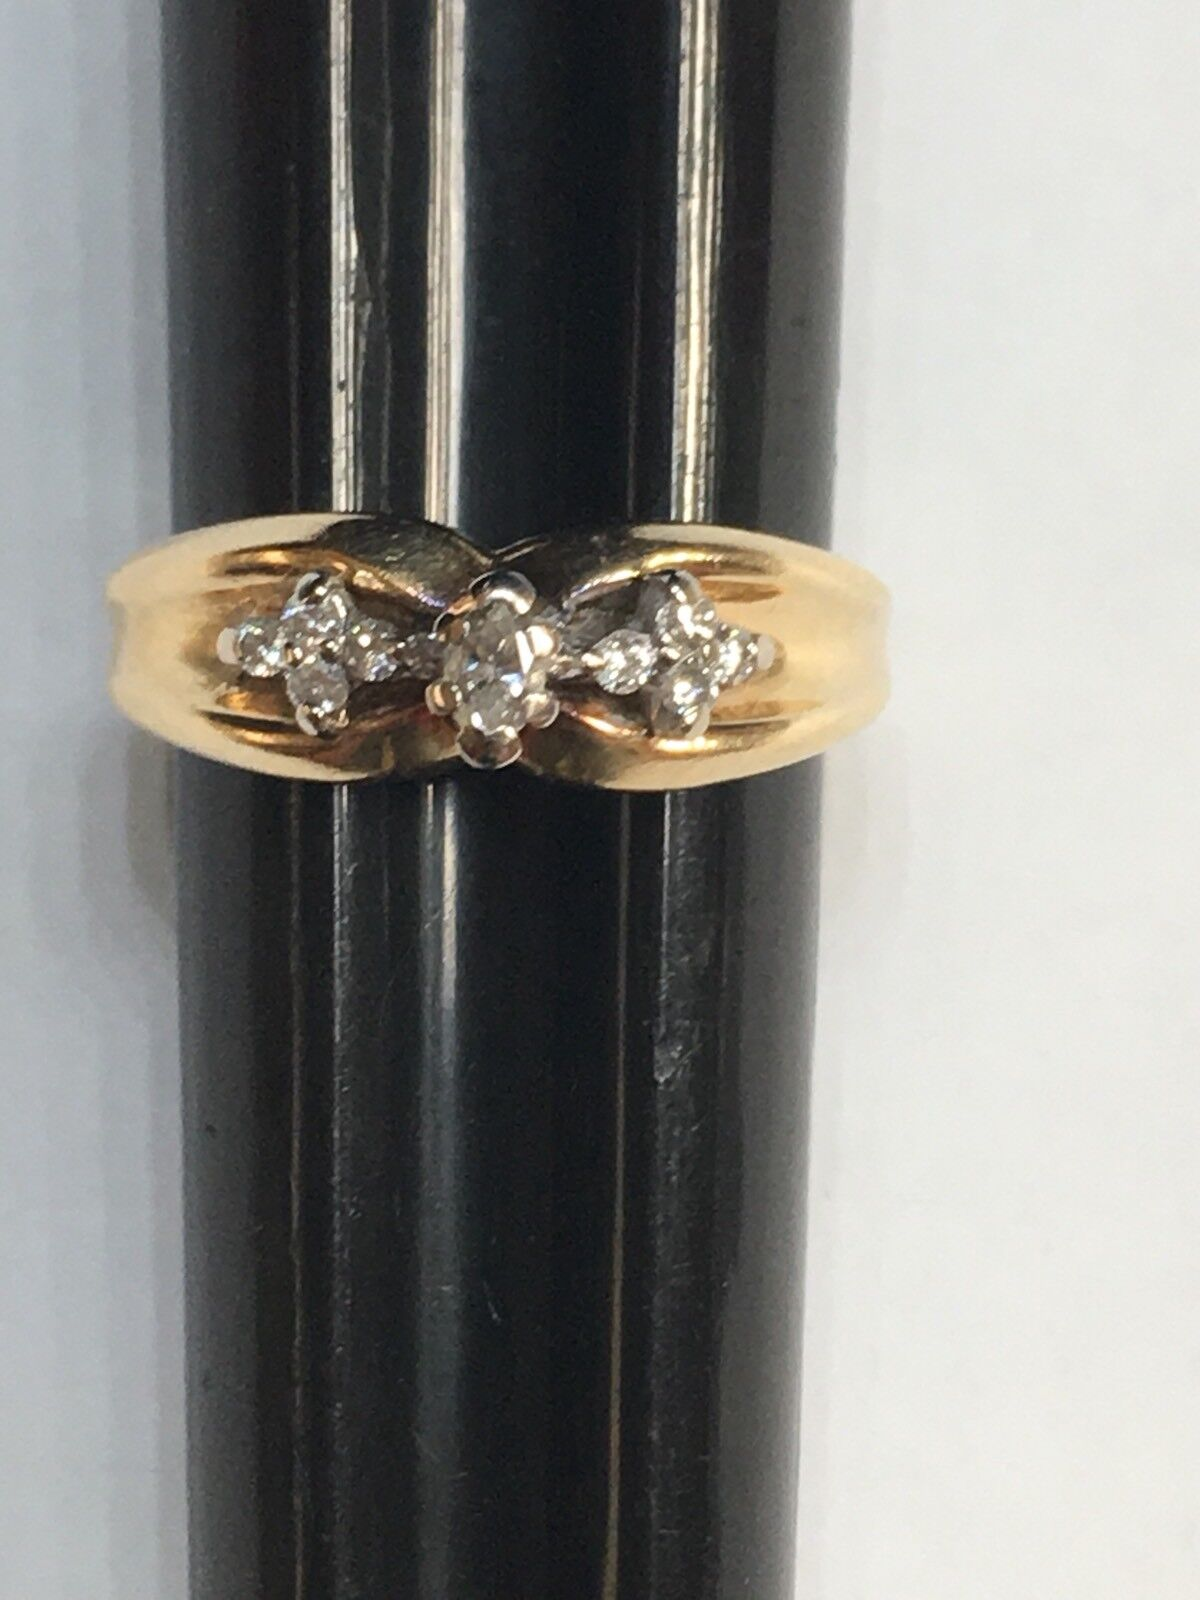 14k Diamond Ring 022 carat Marquise and Round Diamonds